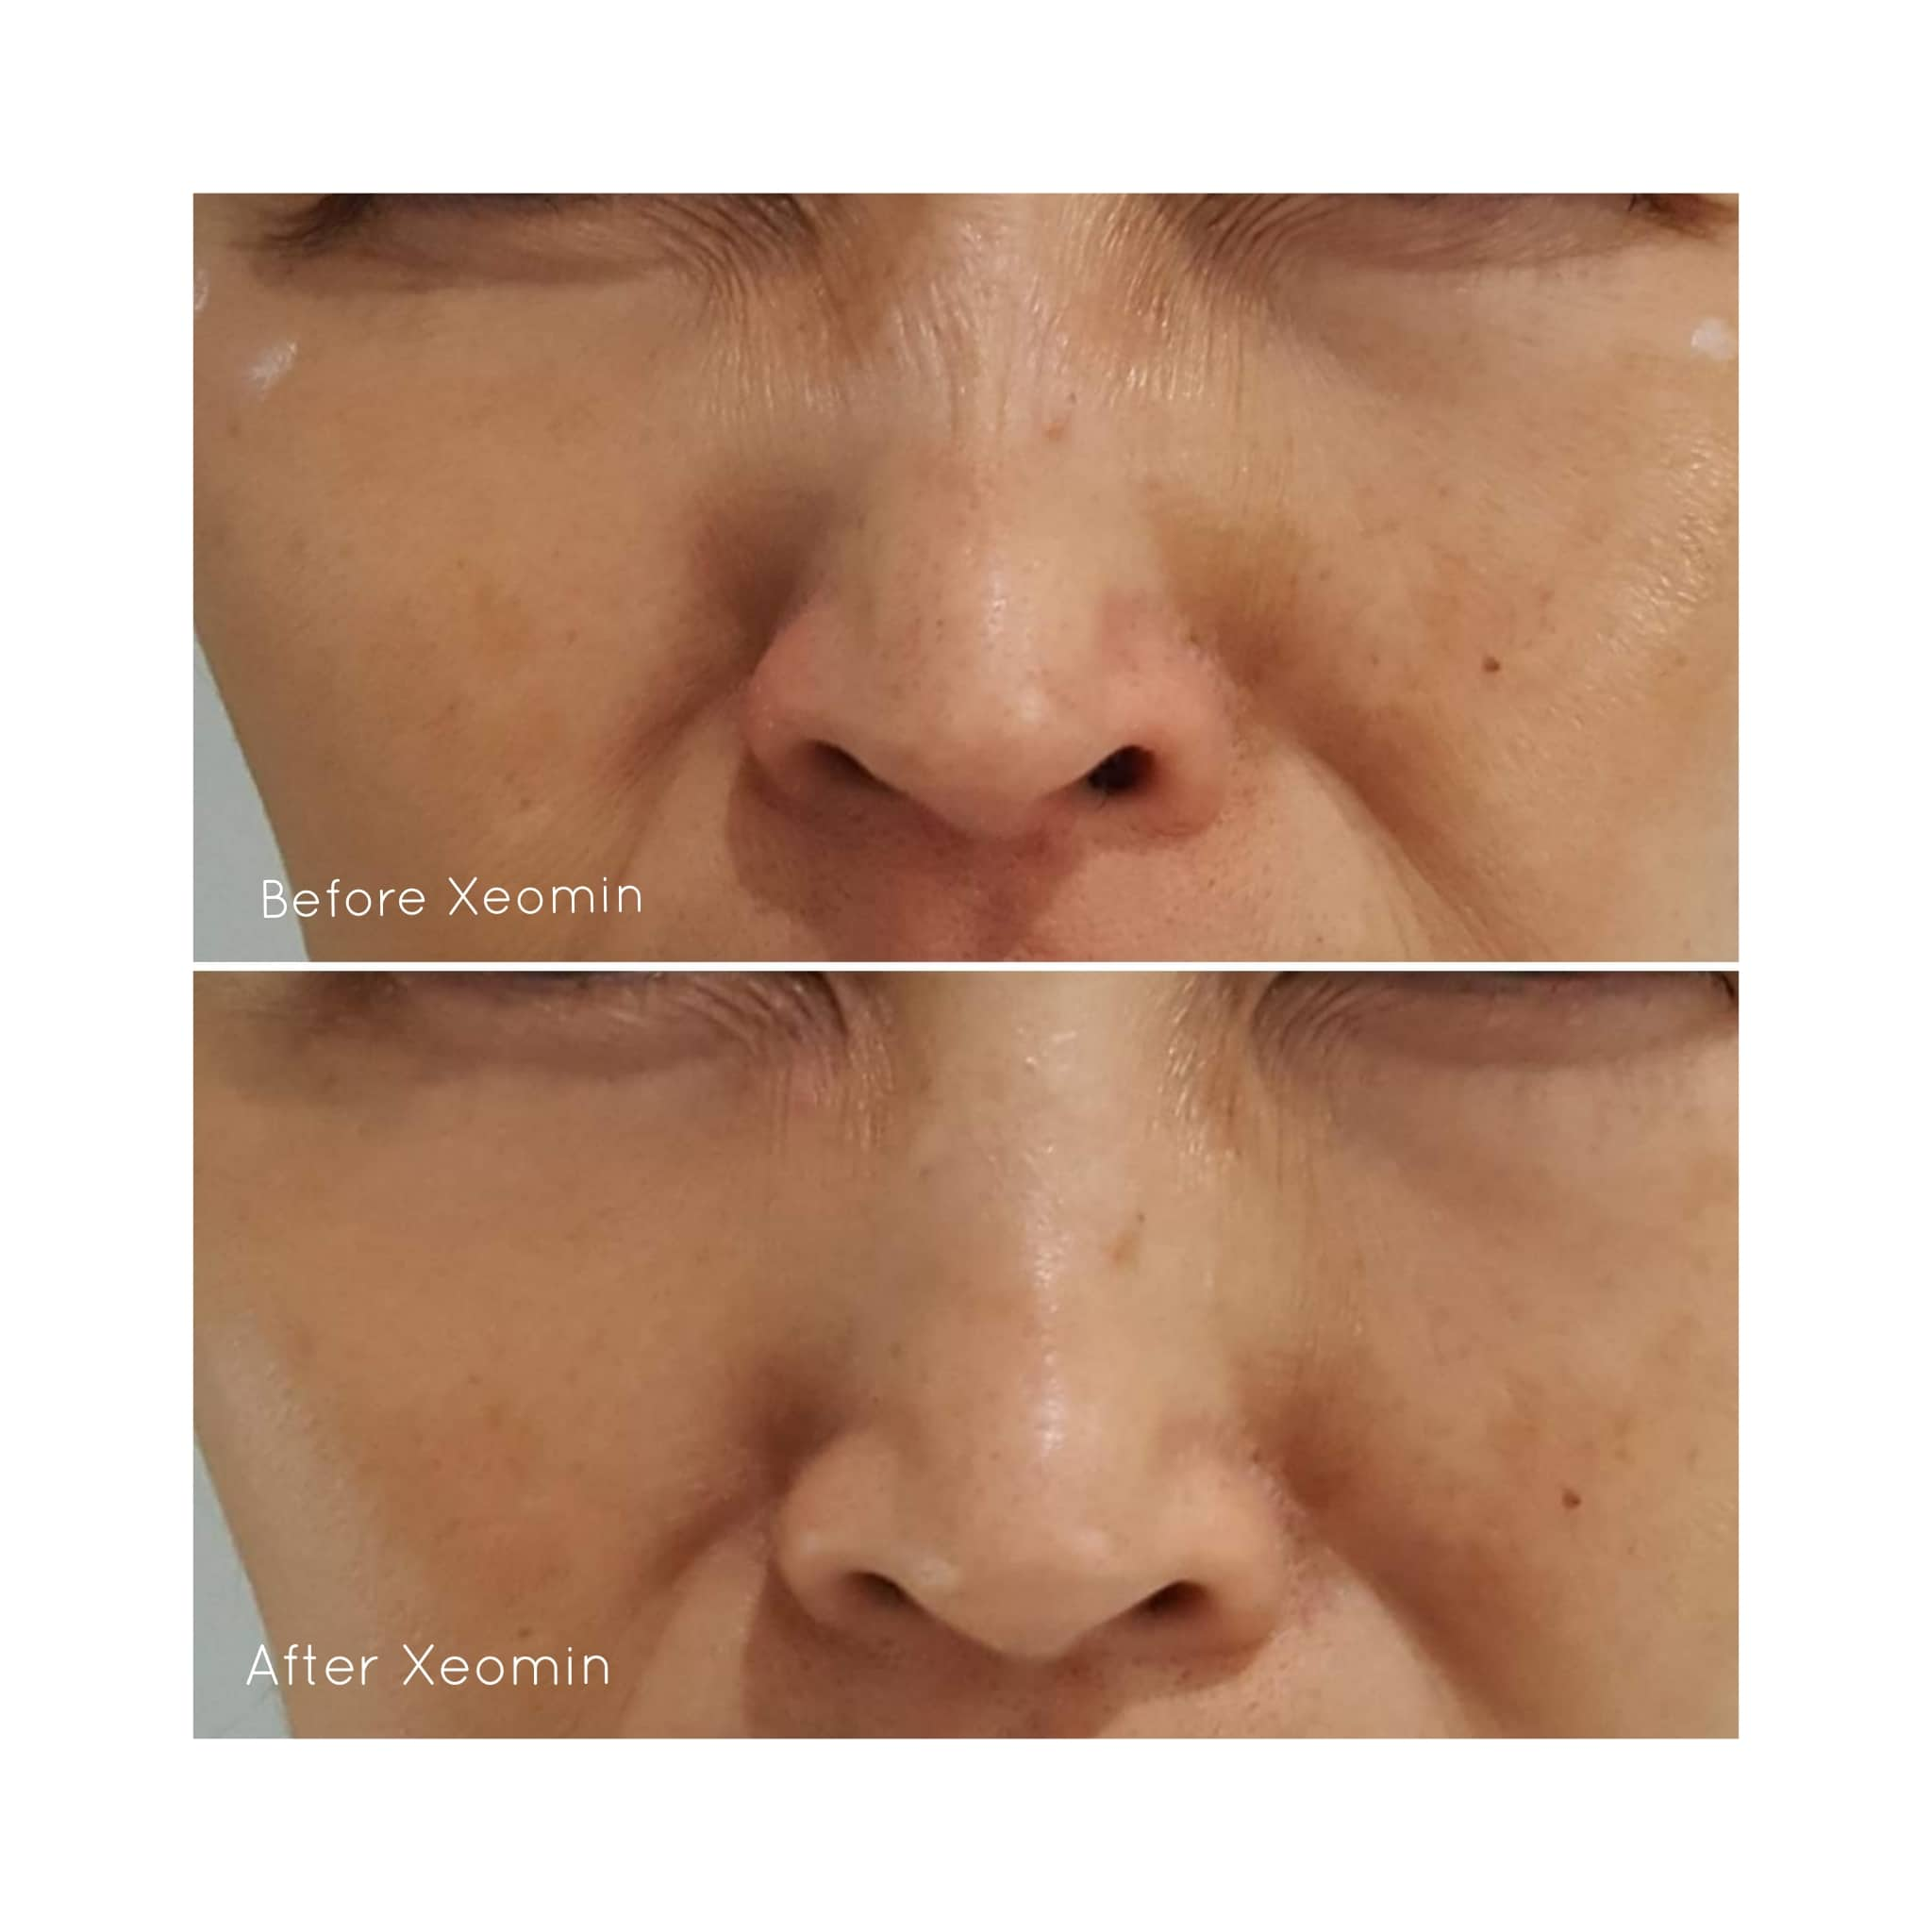 Xeomin® used to soften bunny lines (creases across the nose) - *Please note results will vary between individual patients.